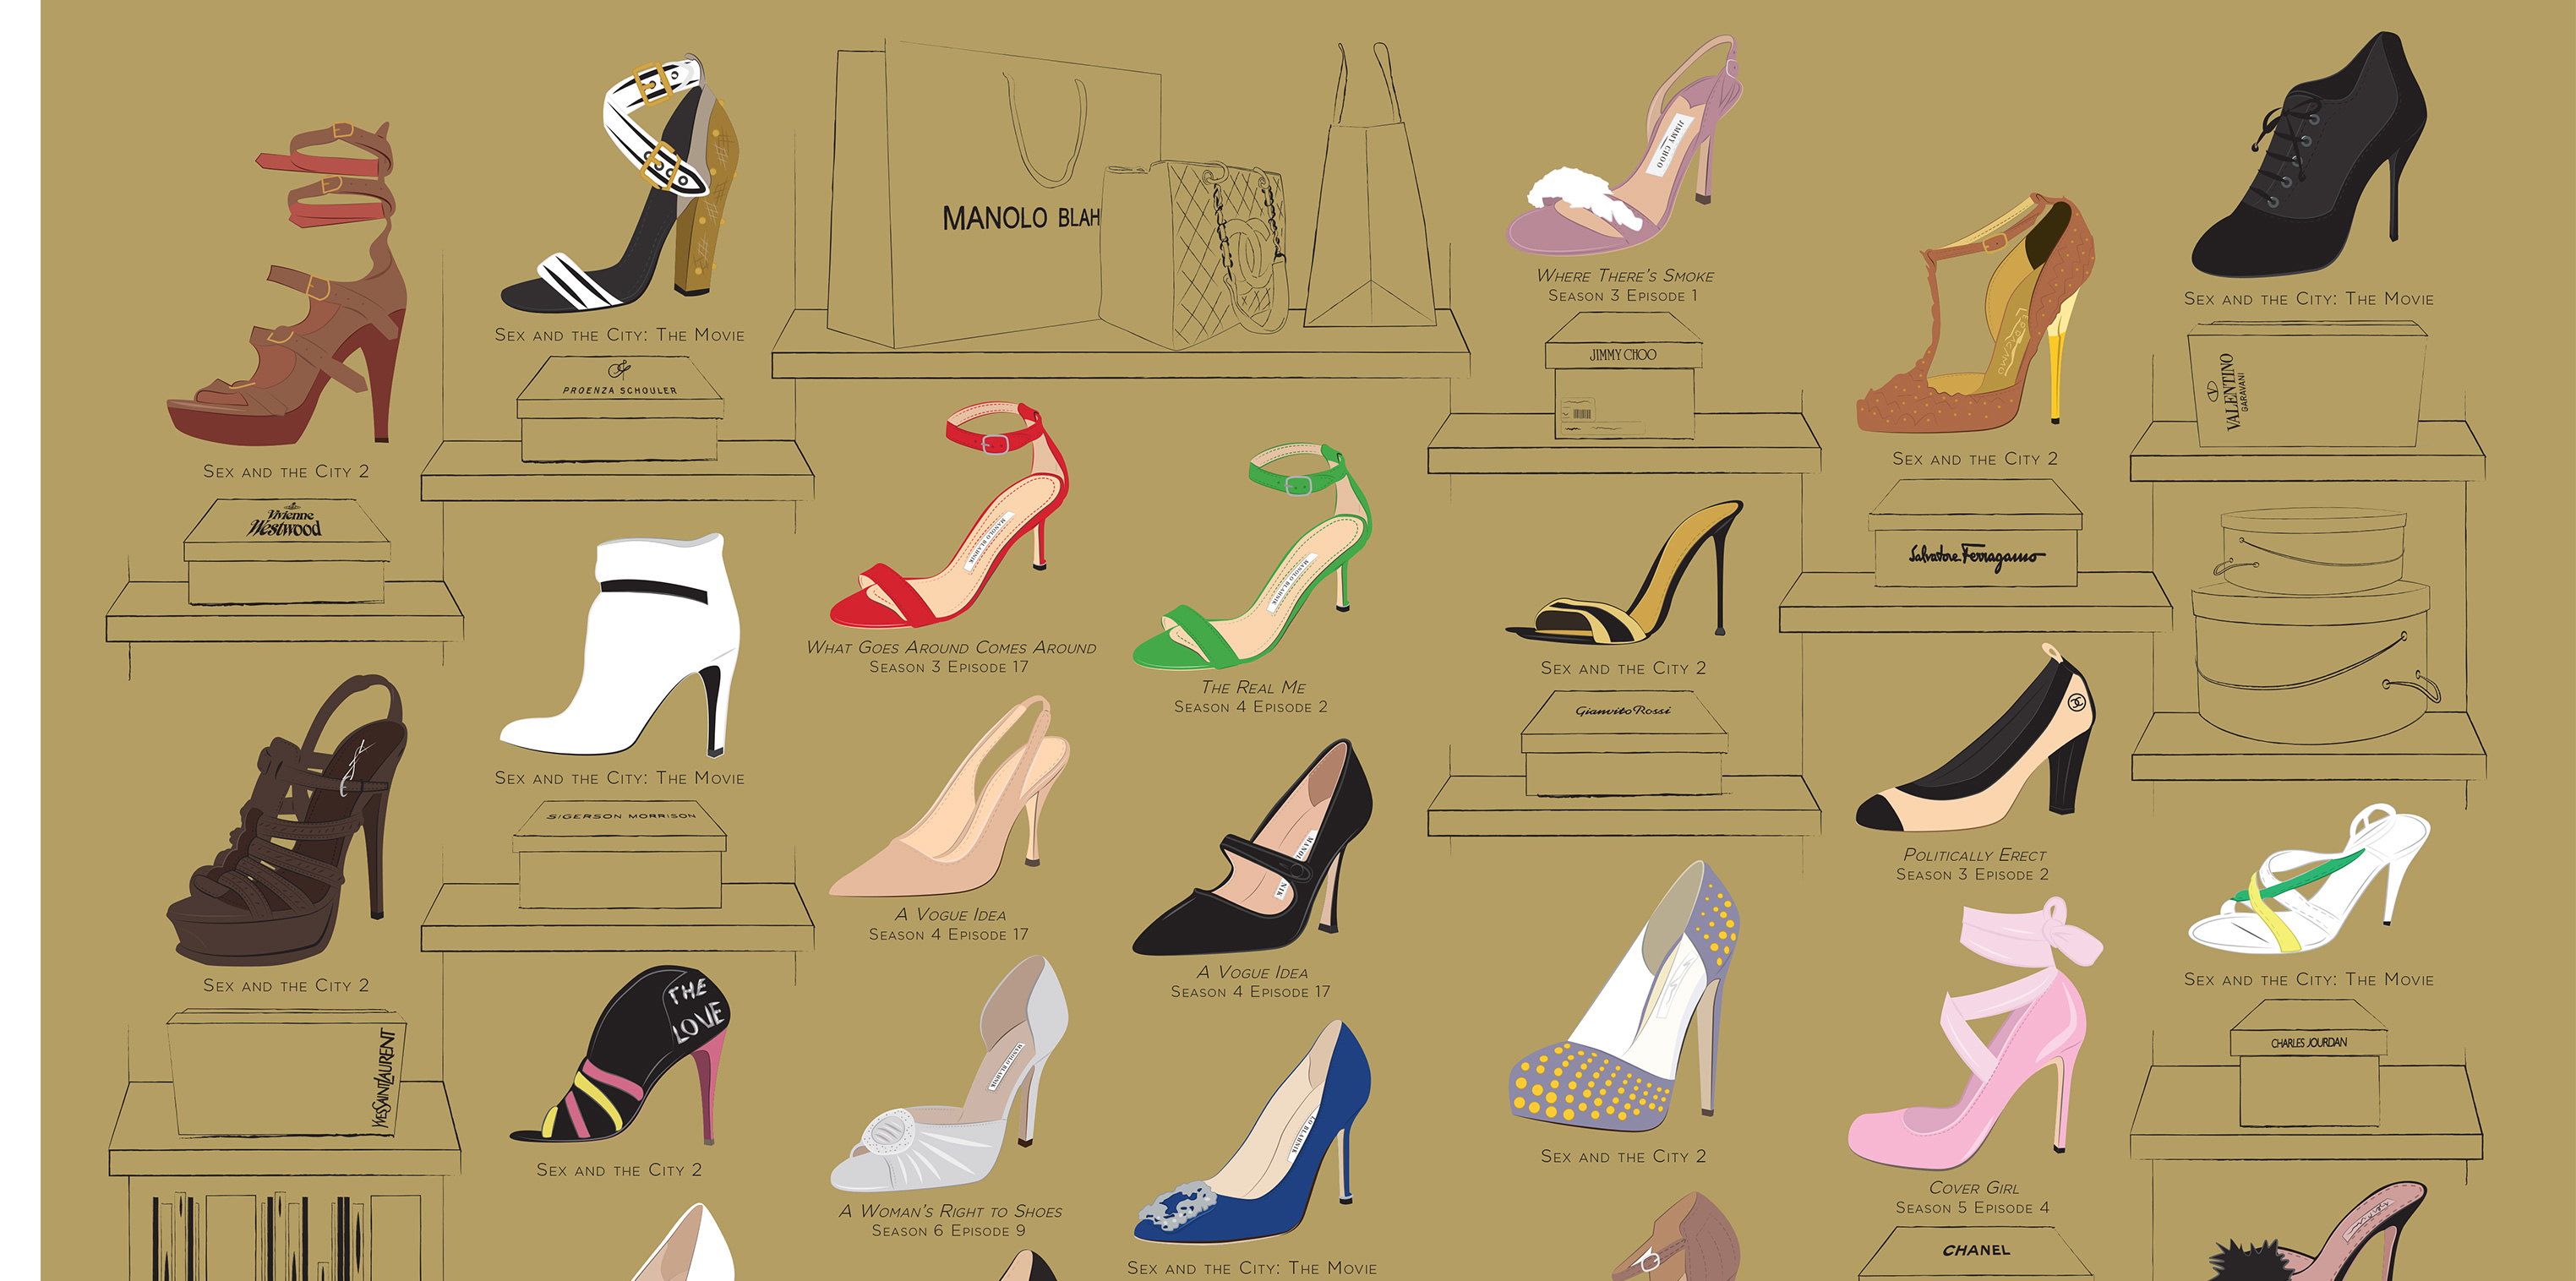 Shoes worn in sex and the city